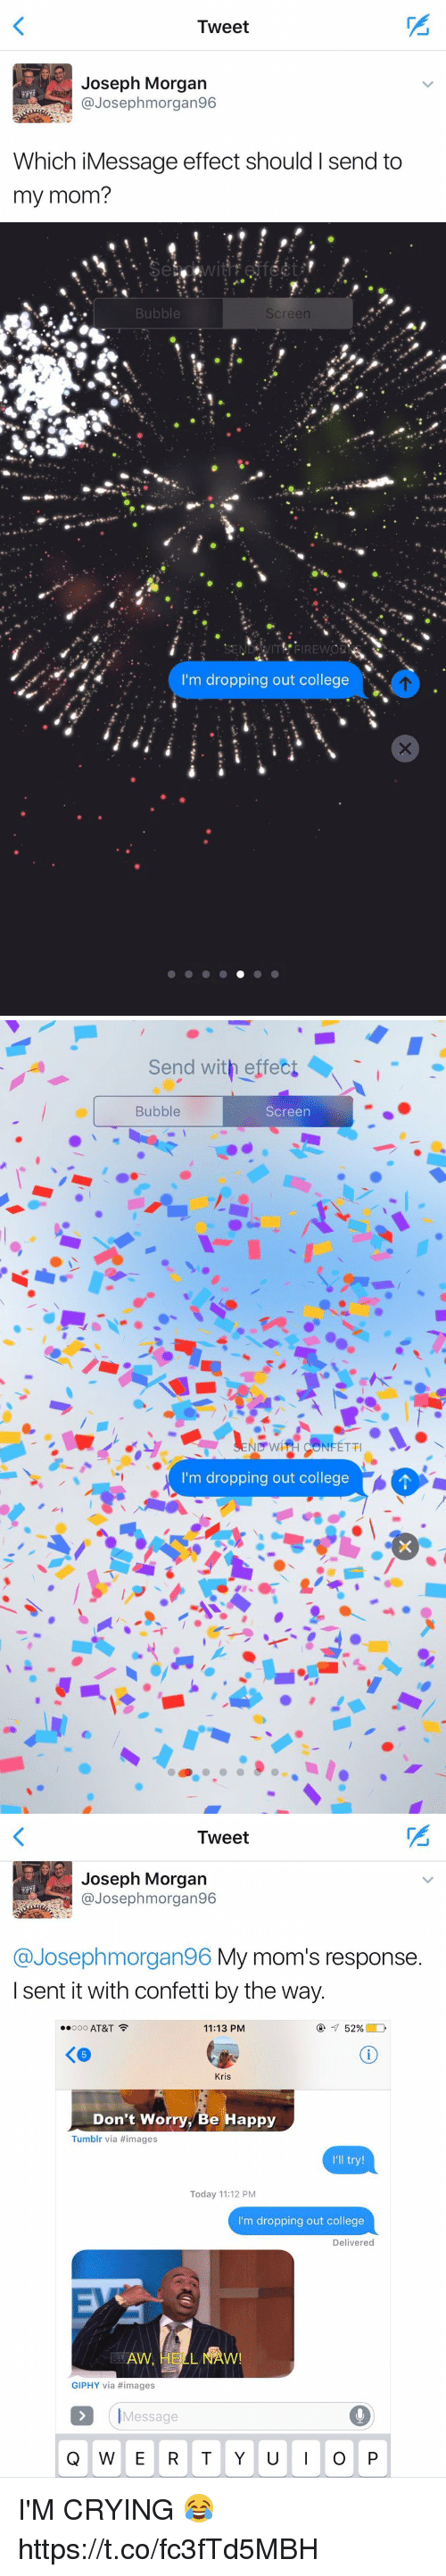 College, Crying, and Moms: Tweet  Joseph Morgan  @Joseph morgan96  Which iMessage effect should I send to  my mom?   Bubble  Screen  m dropping out college   Send with effect  Bubble  Screen  ND WH NFETTI  I'm dropping out college   Tweet  Joseph Morgan  Josep hmorgan96  @Joseph morgan96 My mom's response  I sent it with confetti by the way.  Ooo AT&T  52%  11:13 PM  Kris  Don't Worry, Be Happy  Tumblr via #images  I'll try!  Today 11:12 PM  I'm dropping out college  Delivered  GIPHY via images  Message  Q W E R T Y U  I O P I'M CRYING 😂 https://t.co/fc3fTd5MBH